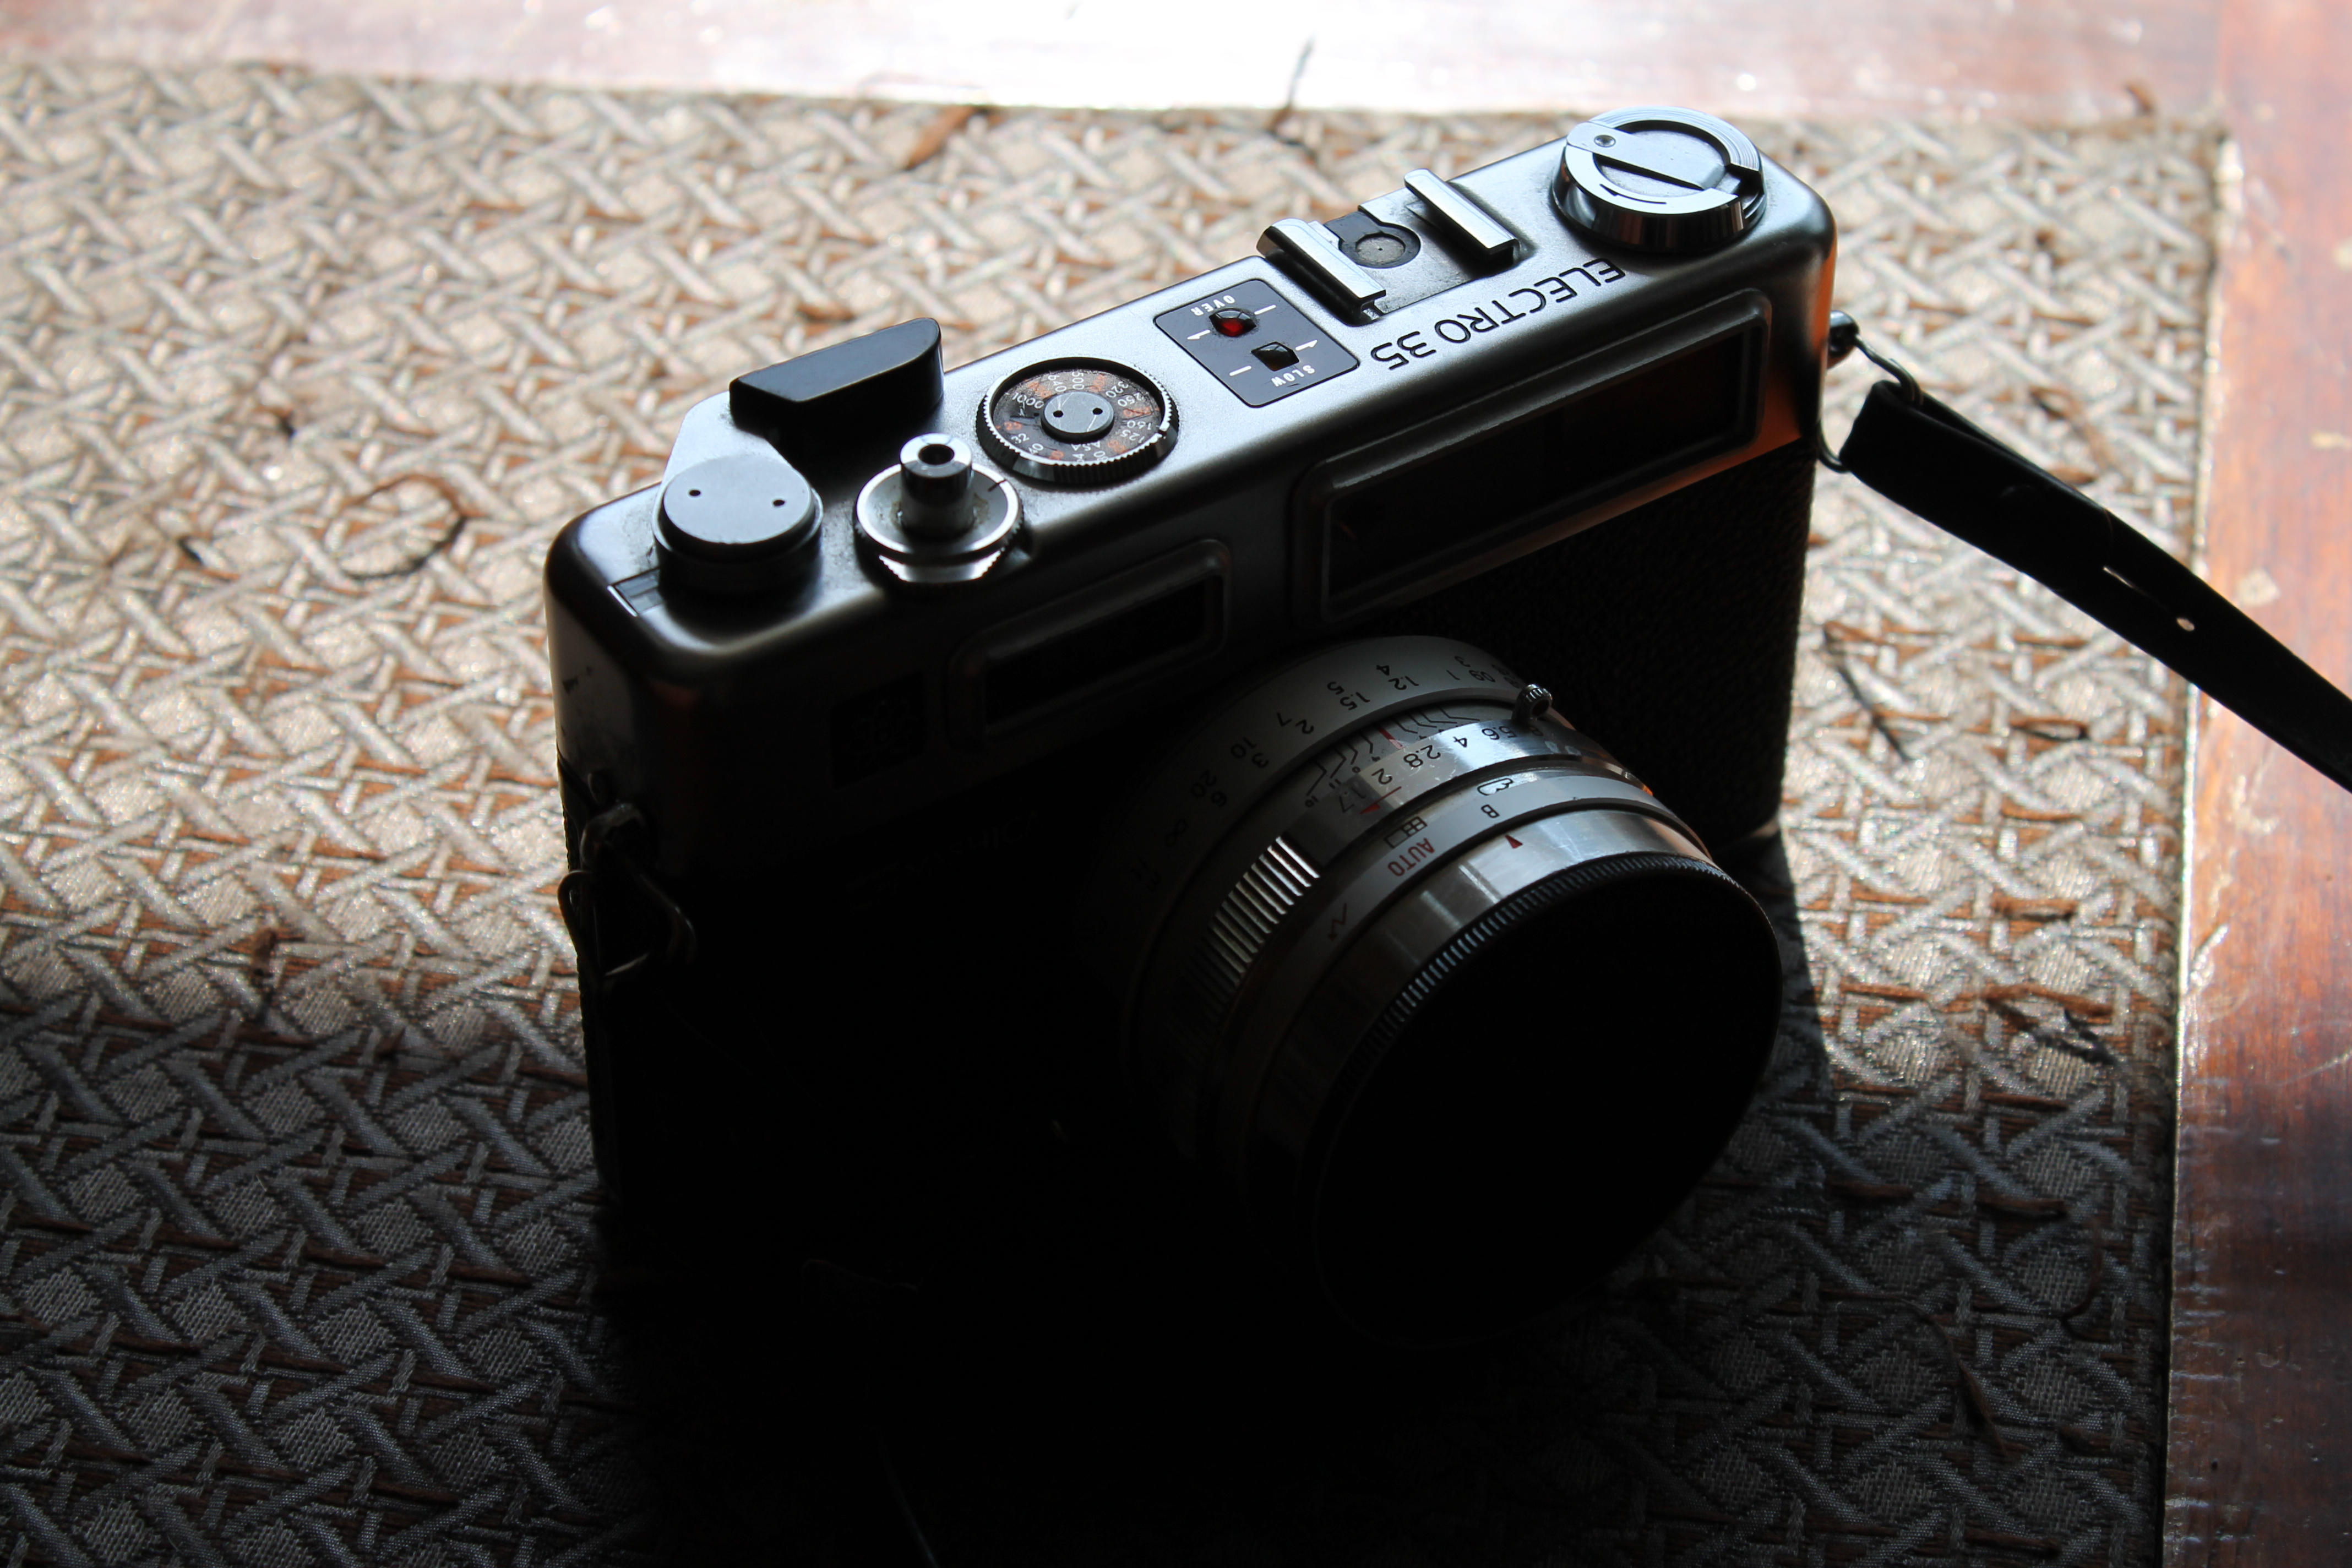 how to turn live voiew on canon eos